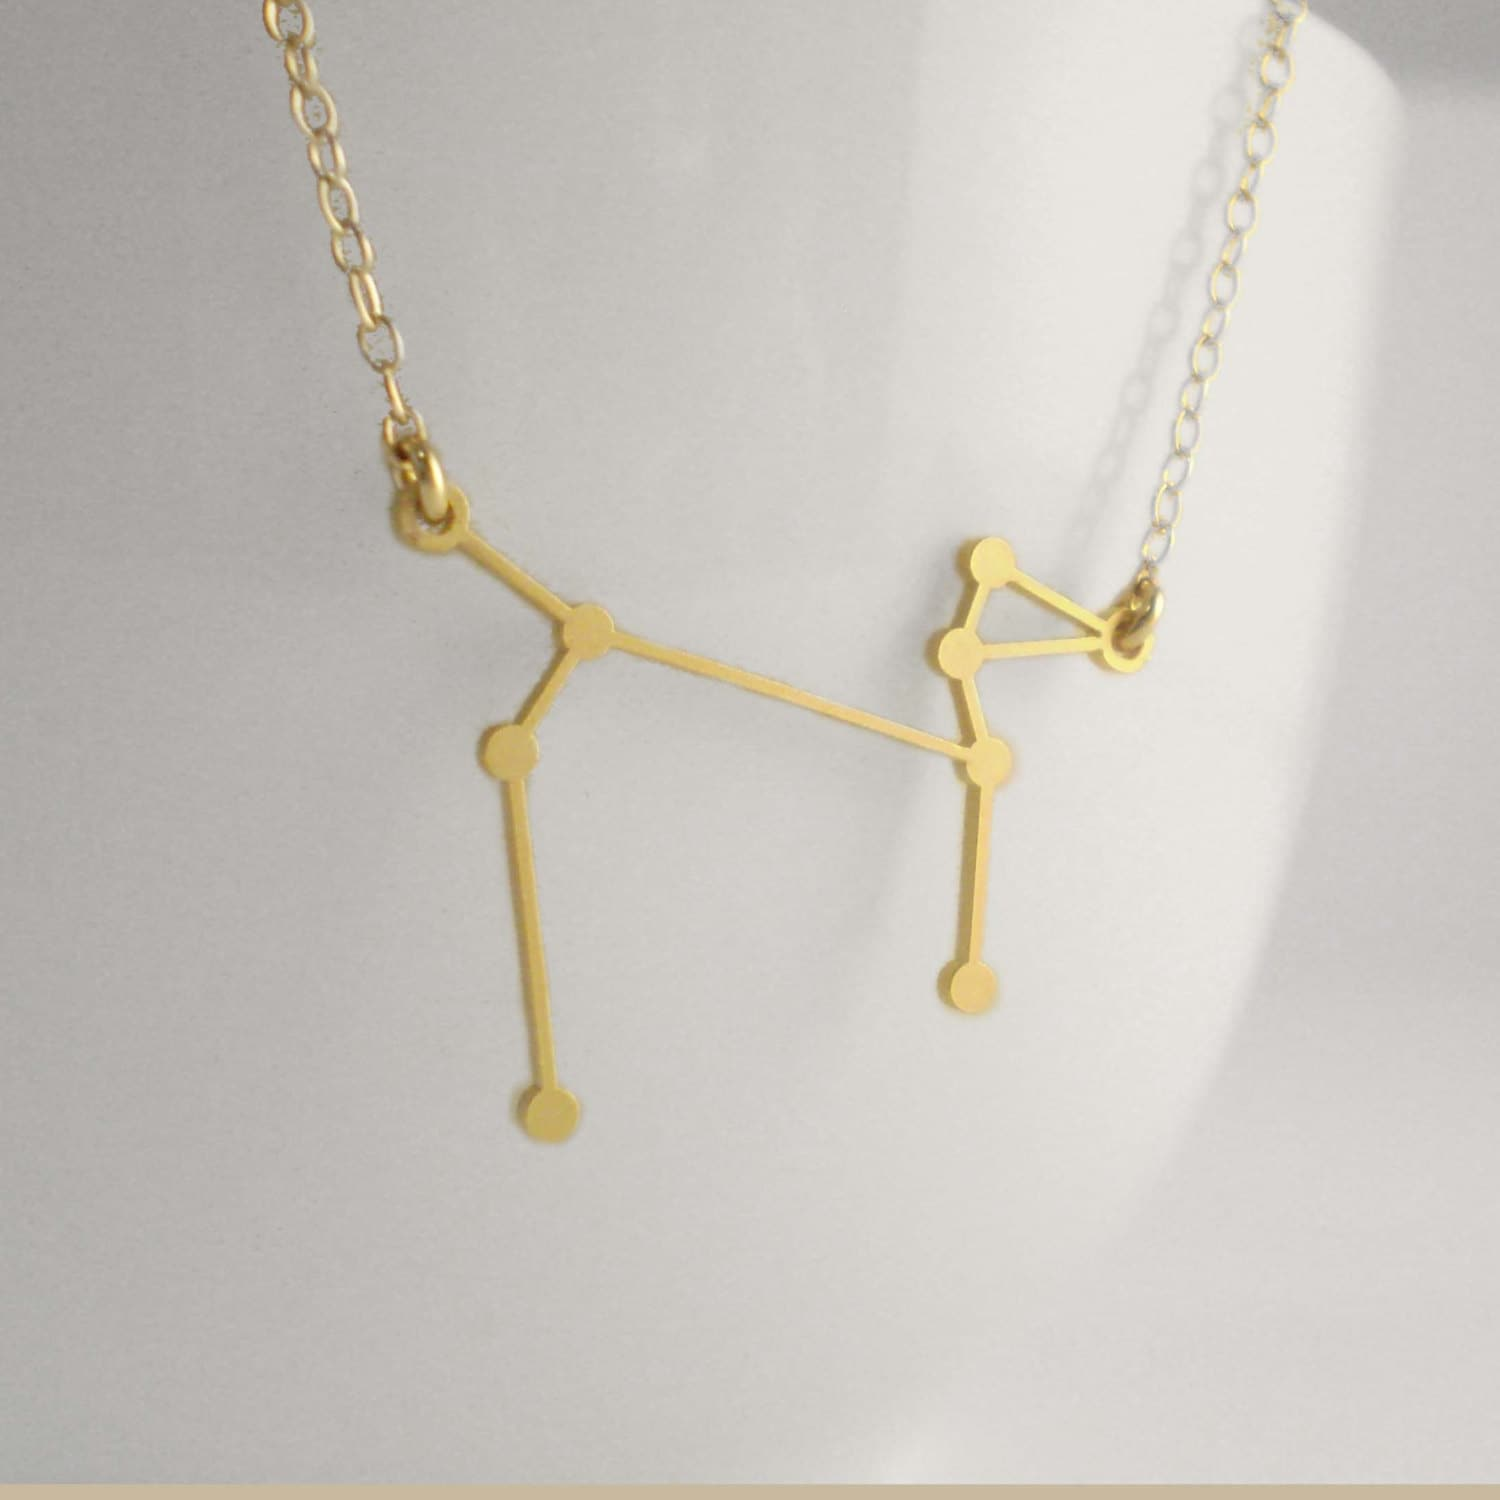 Canis Major Constellation Necklace, Constellation Necklace